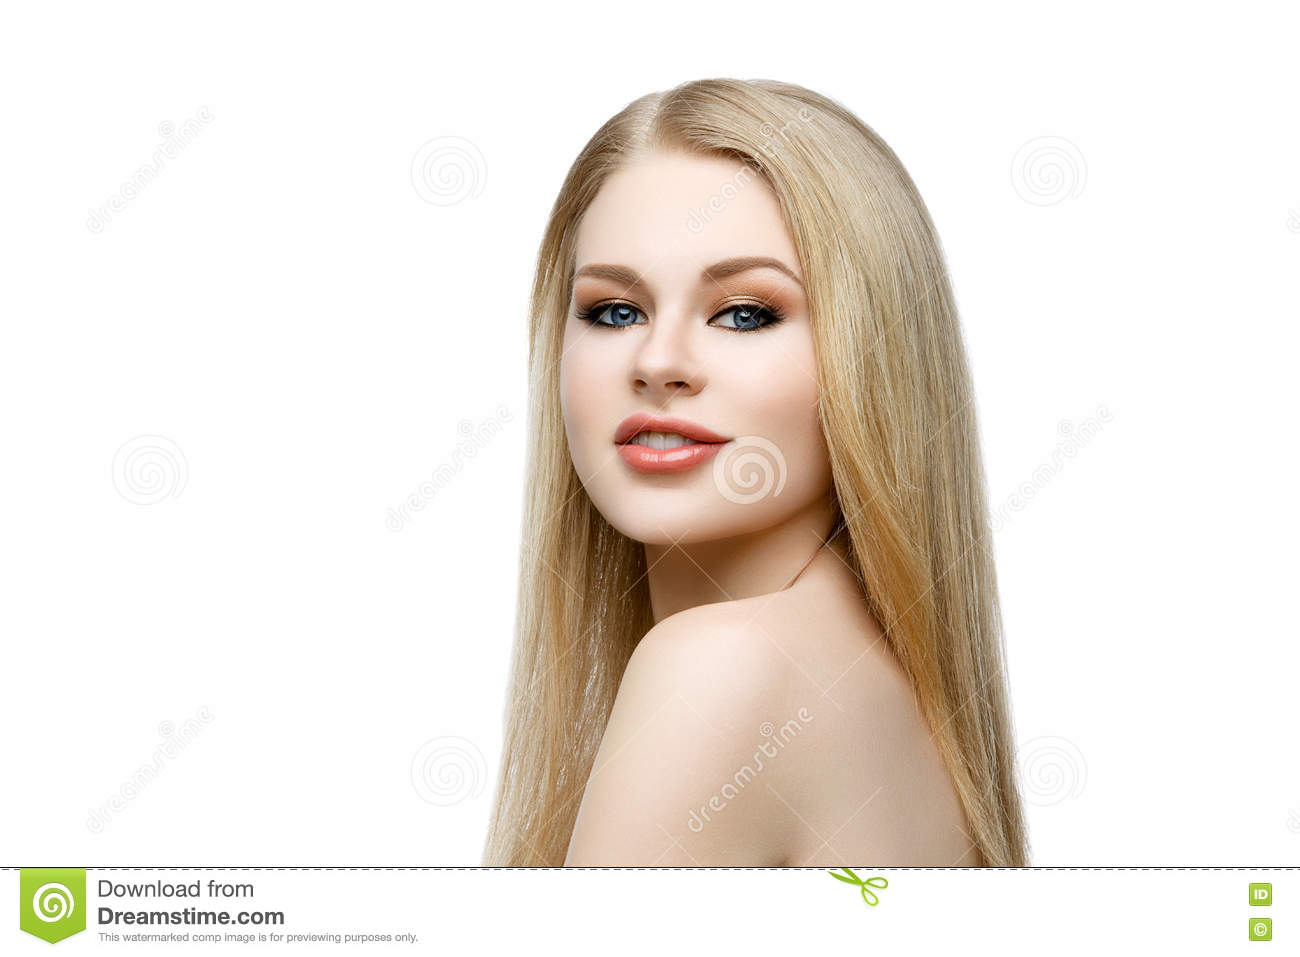 be193bf99b Closeup portrait of beautiful young woman with messy long blond hair and  bright makeup. Beauty shot. Isolated over white background. Copy space.